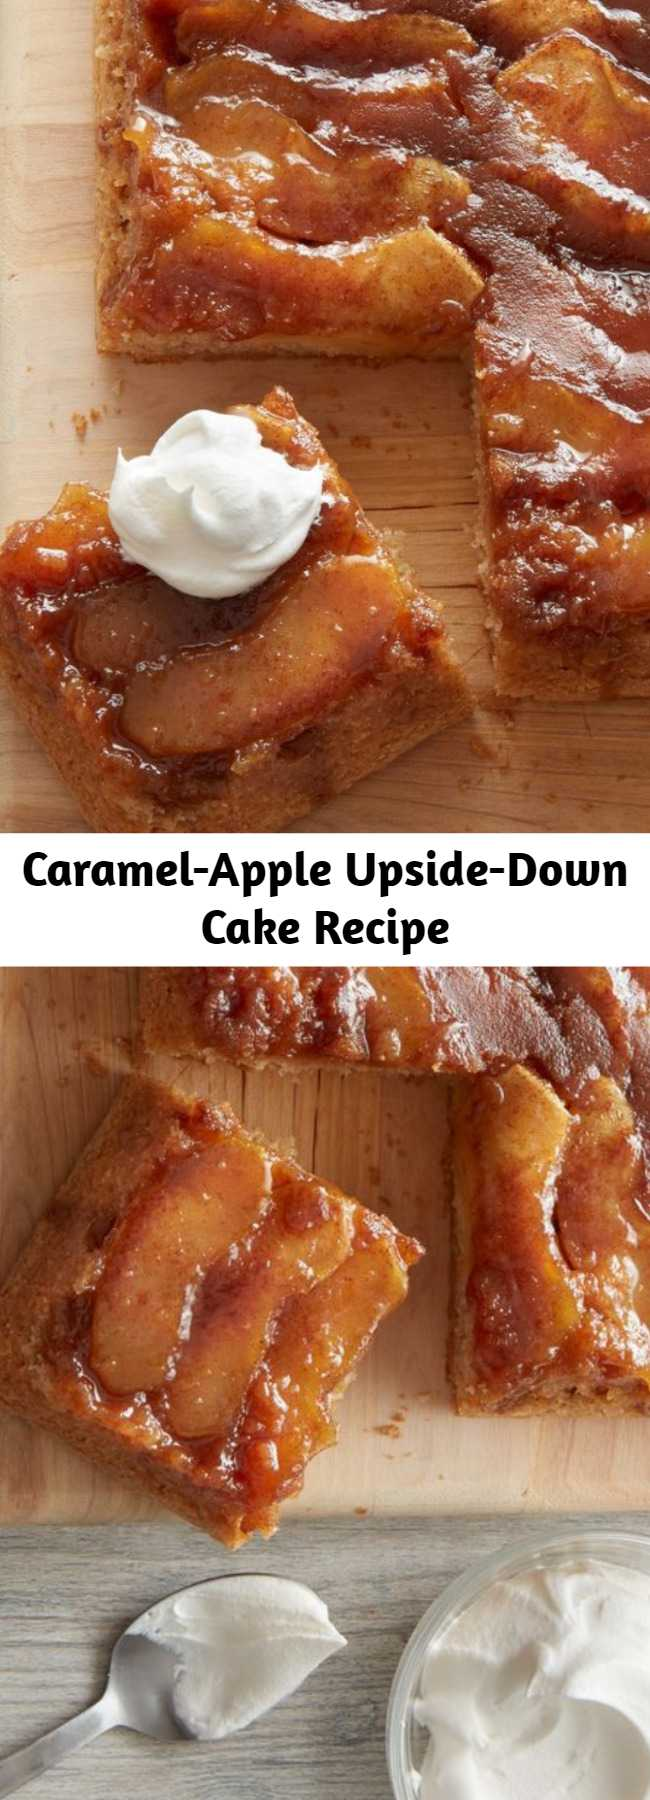 Caramel-Apple Upside-Down Cake Recipe - The best part about the classic pineapple upside-down cake is its gooey fruit topping, and this fresh take on the beloved dessert is no exception. We replaced canned pineapple with fresh apple slices whose tart flavor is the perfect balance to a sticky-sweet caramel sauce. We don't like to play favorites, but this topping plus a tender vanilla scratch cake equals an easy modern-day treat that may just outdo the original.